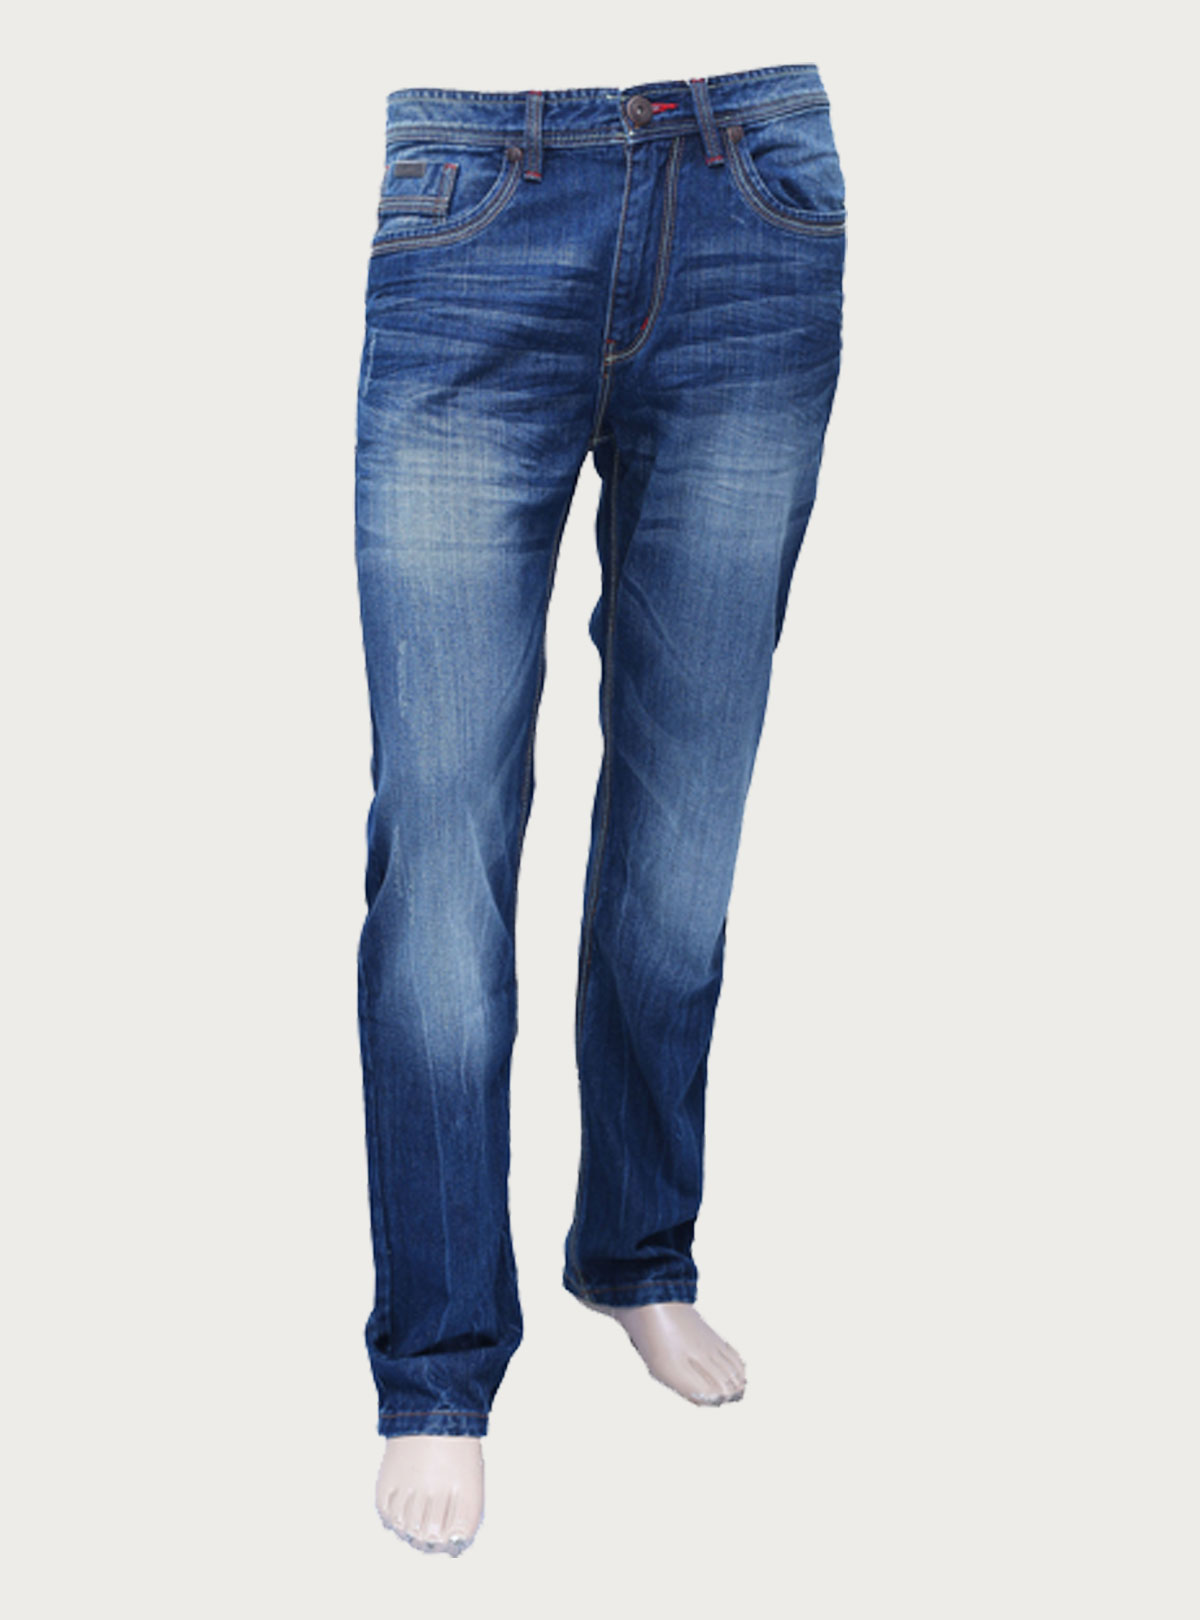 Stylish Jeans By Freestyler